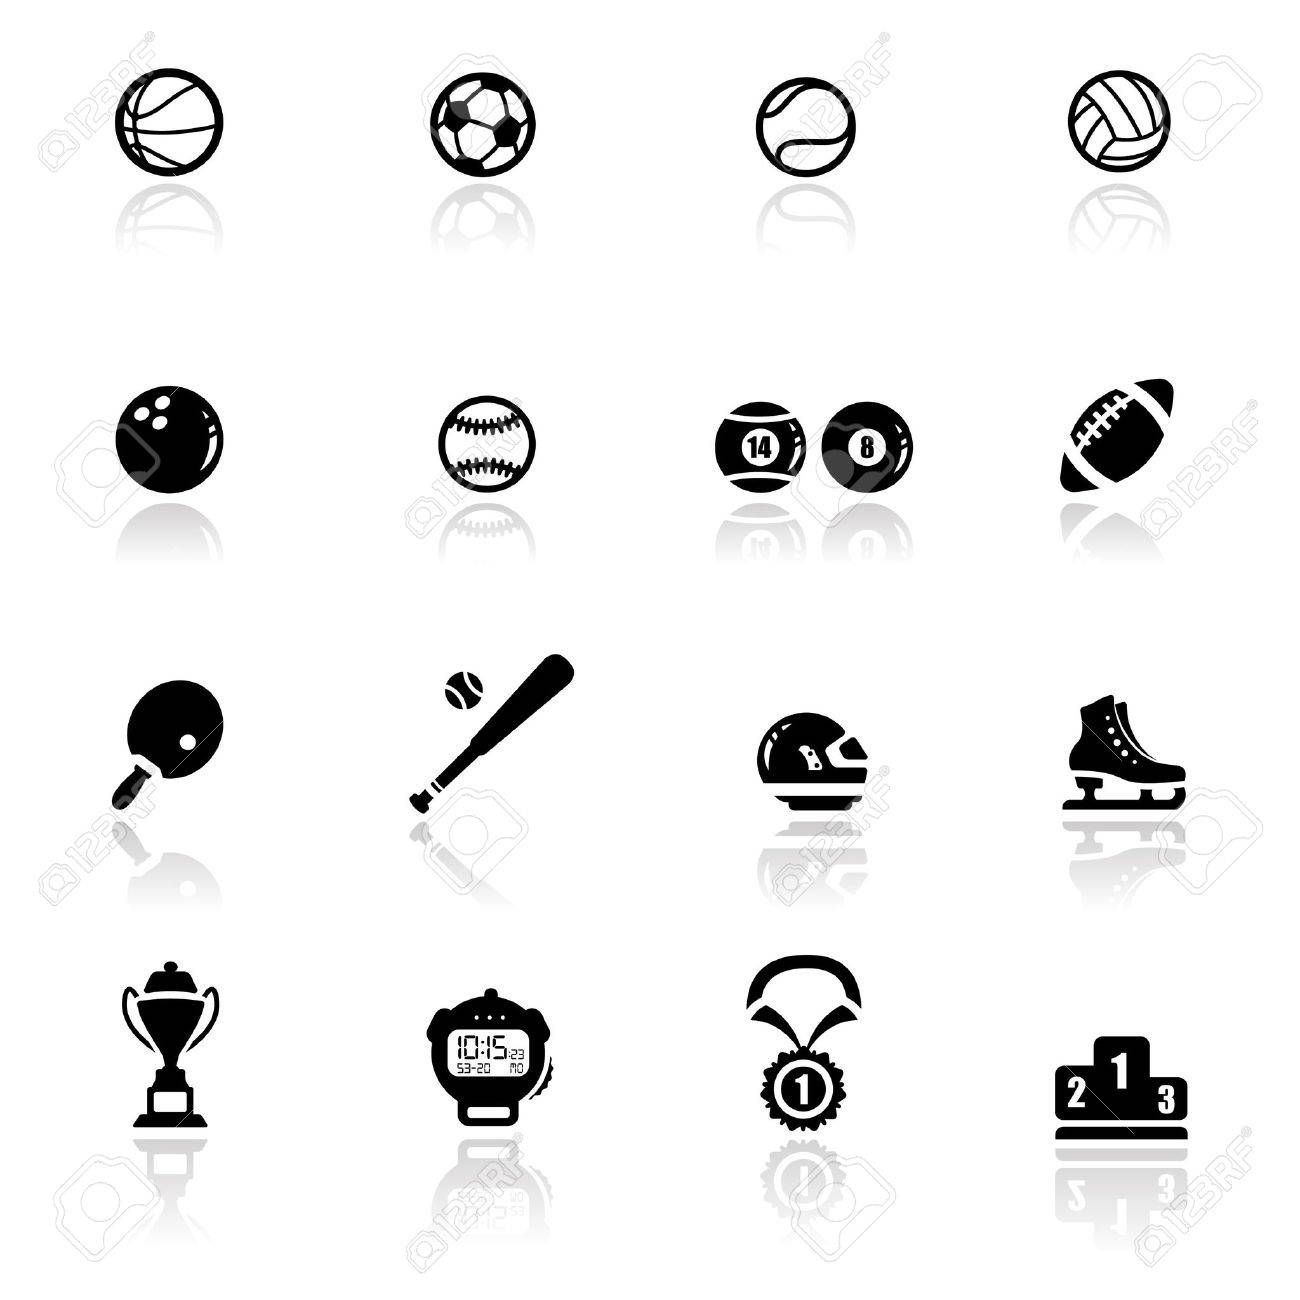 Icons set sports and games Stock Vector - 9650987